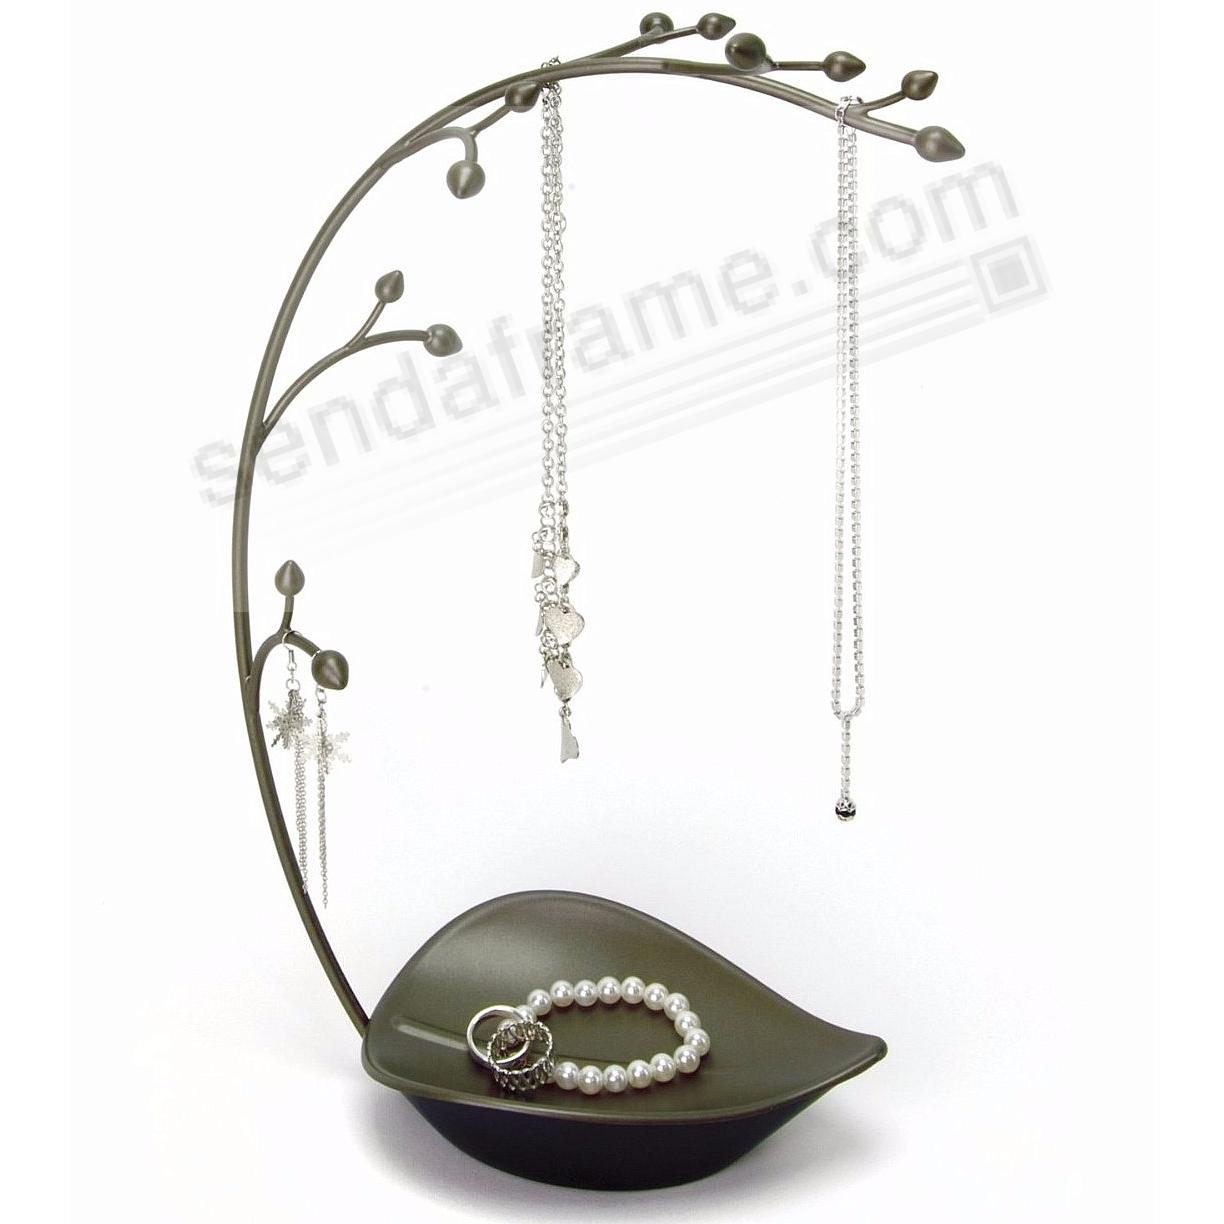 The ORCHID JEWELRY TREE Organizer by Umbra®